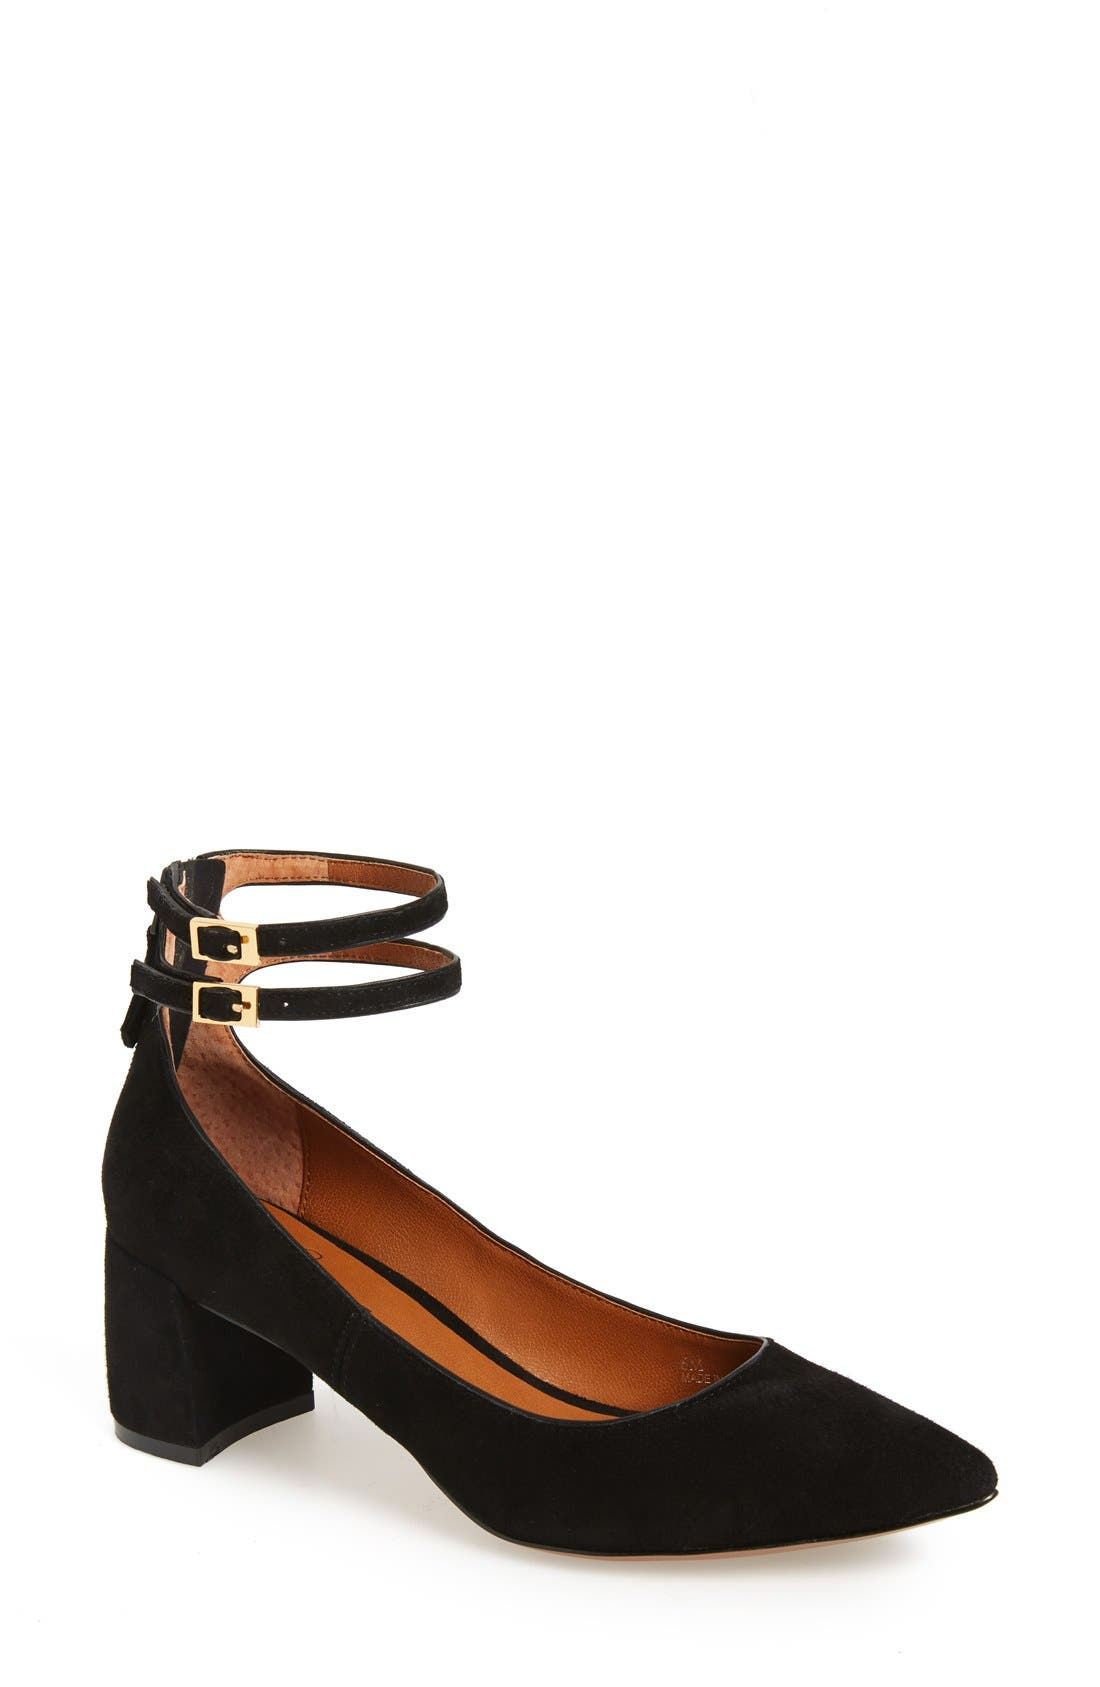 Alternate Image 1 Selected - Linea Paolo 'Noel' Pointy Toe Ankle Strap Pump (Women)